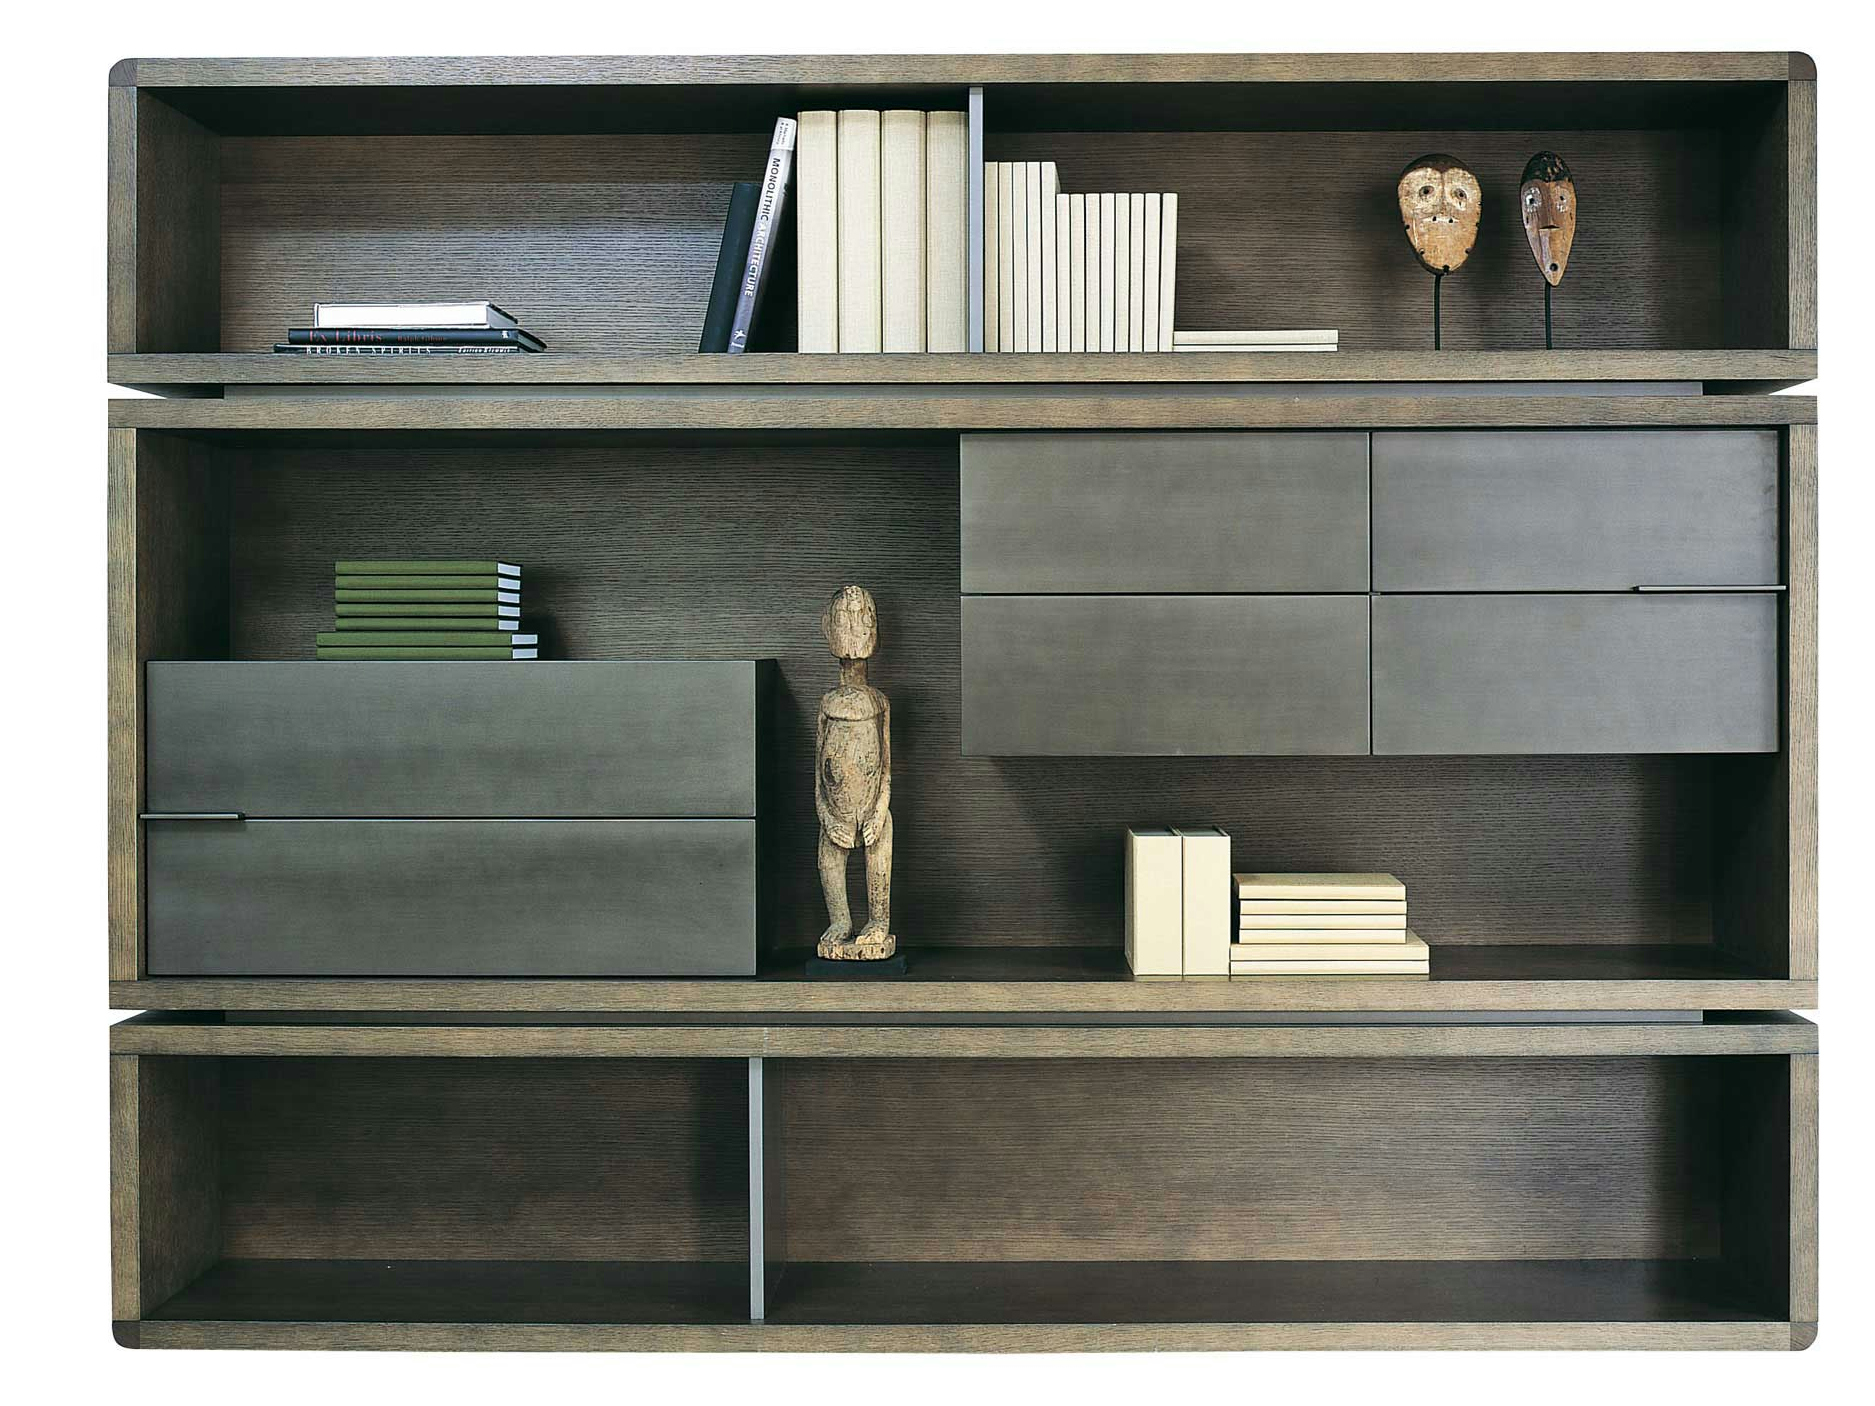 Biblioth que composable en ch ne rive droite collection les contemporains by roche bobois - Bibliotheque roche bobois ...